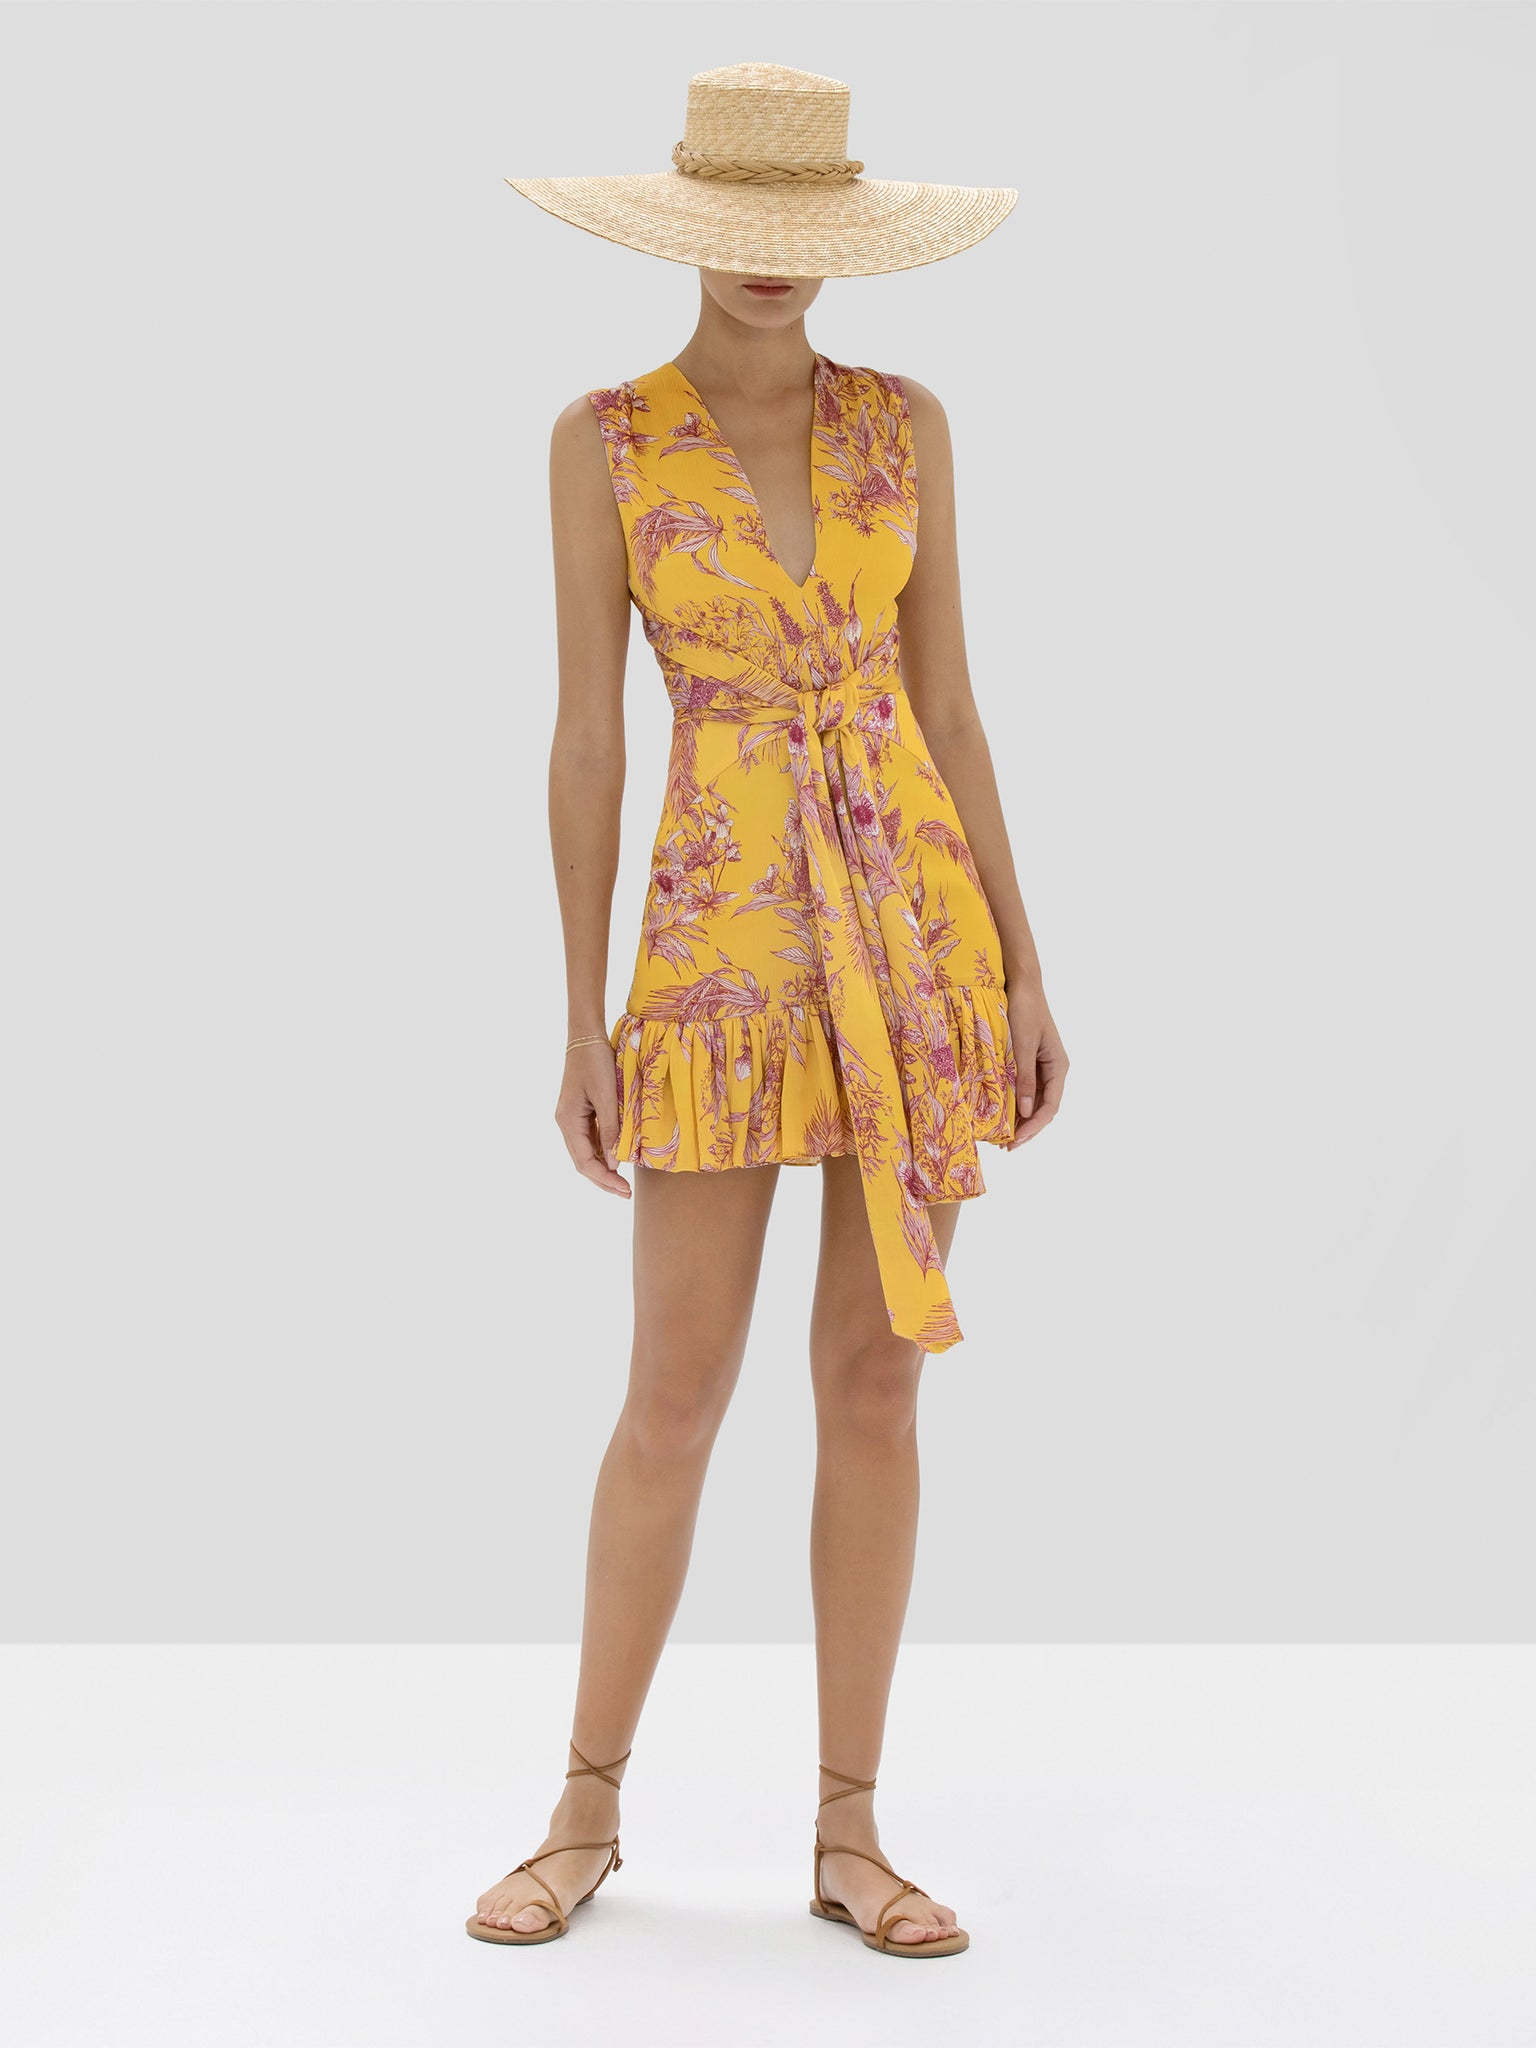 Alexis Cassara Dress in Tuscan Palm from Spring Summer 2020 Collection